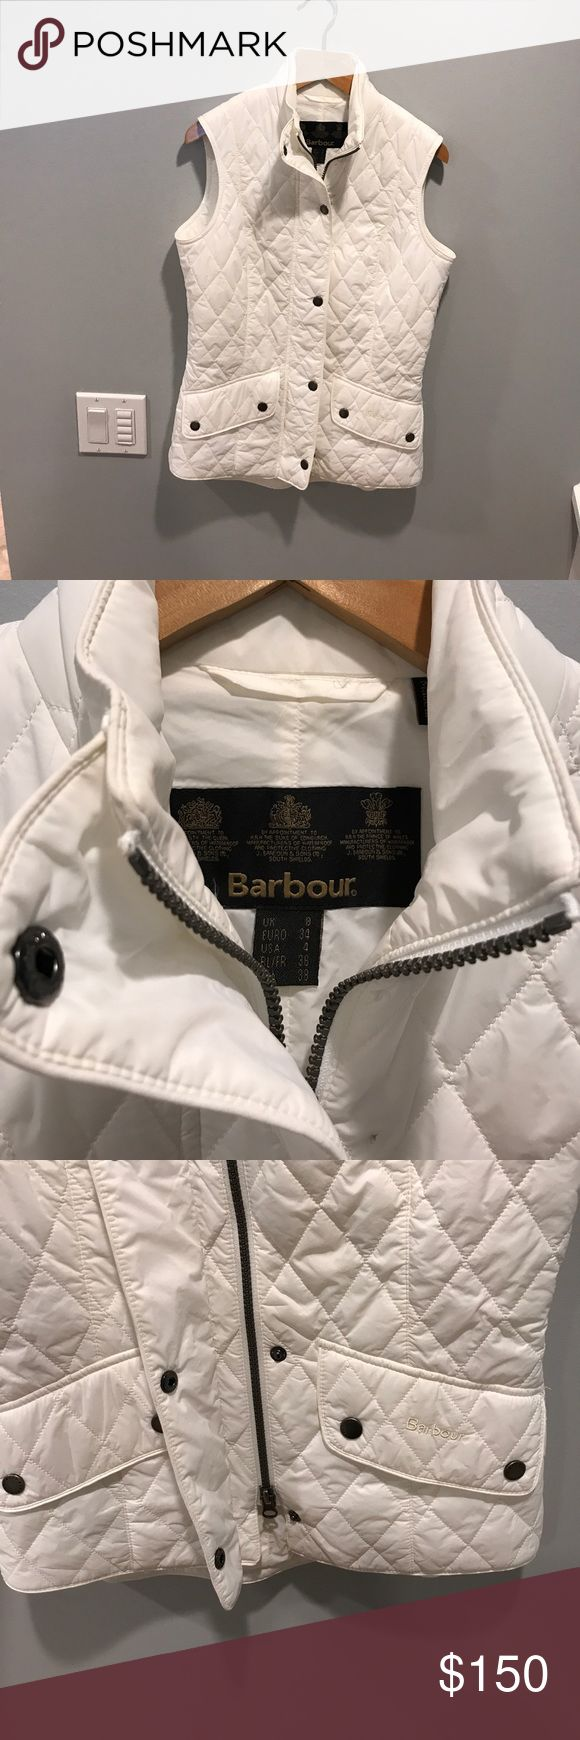 Barbour vest size 4! White never worn! New never worn! Barbour Jackets & Coats Vests